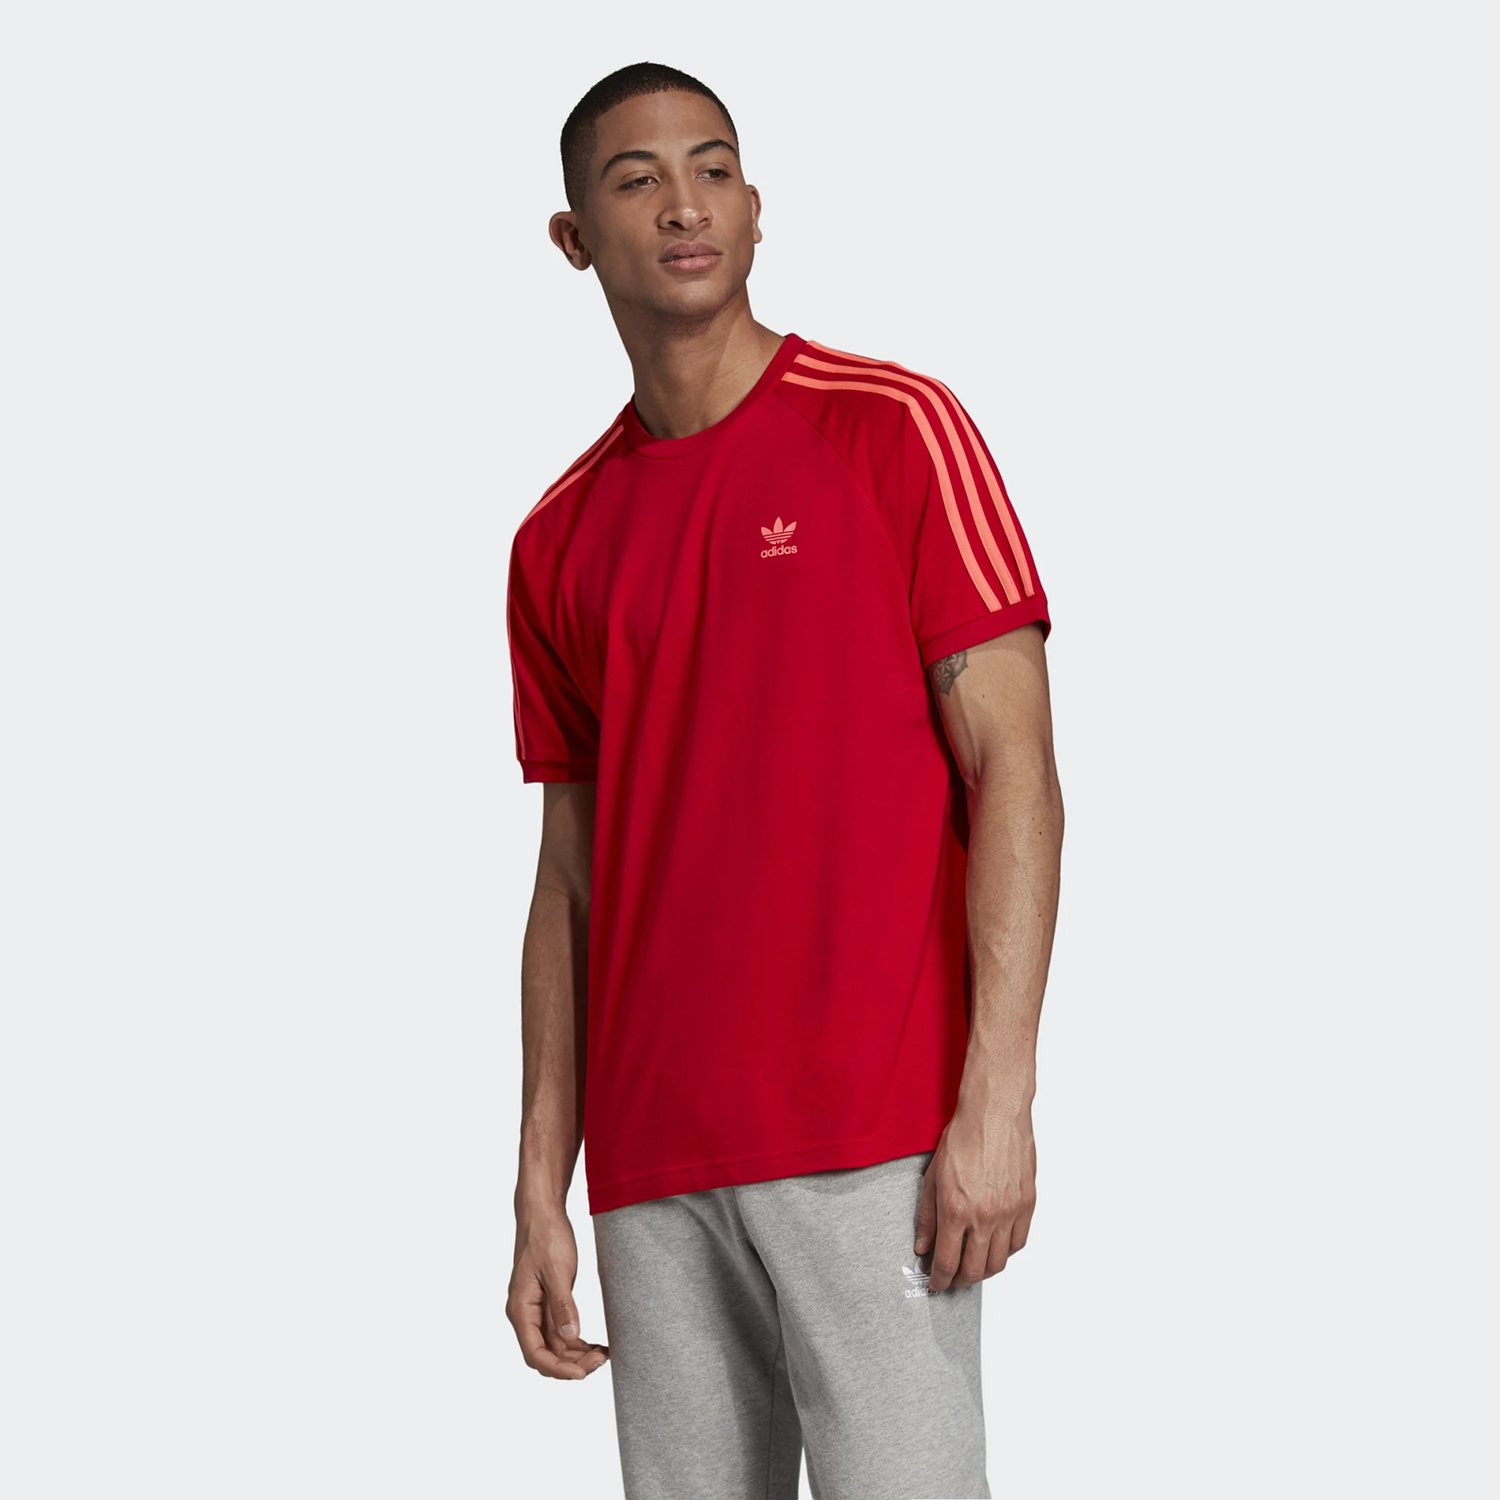 adidas Originals 3-Stripes Adicolor Tee - Ανδρικό Μπλουζάκι (9000031630_10260)